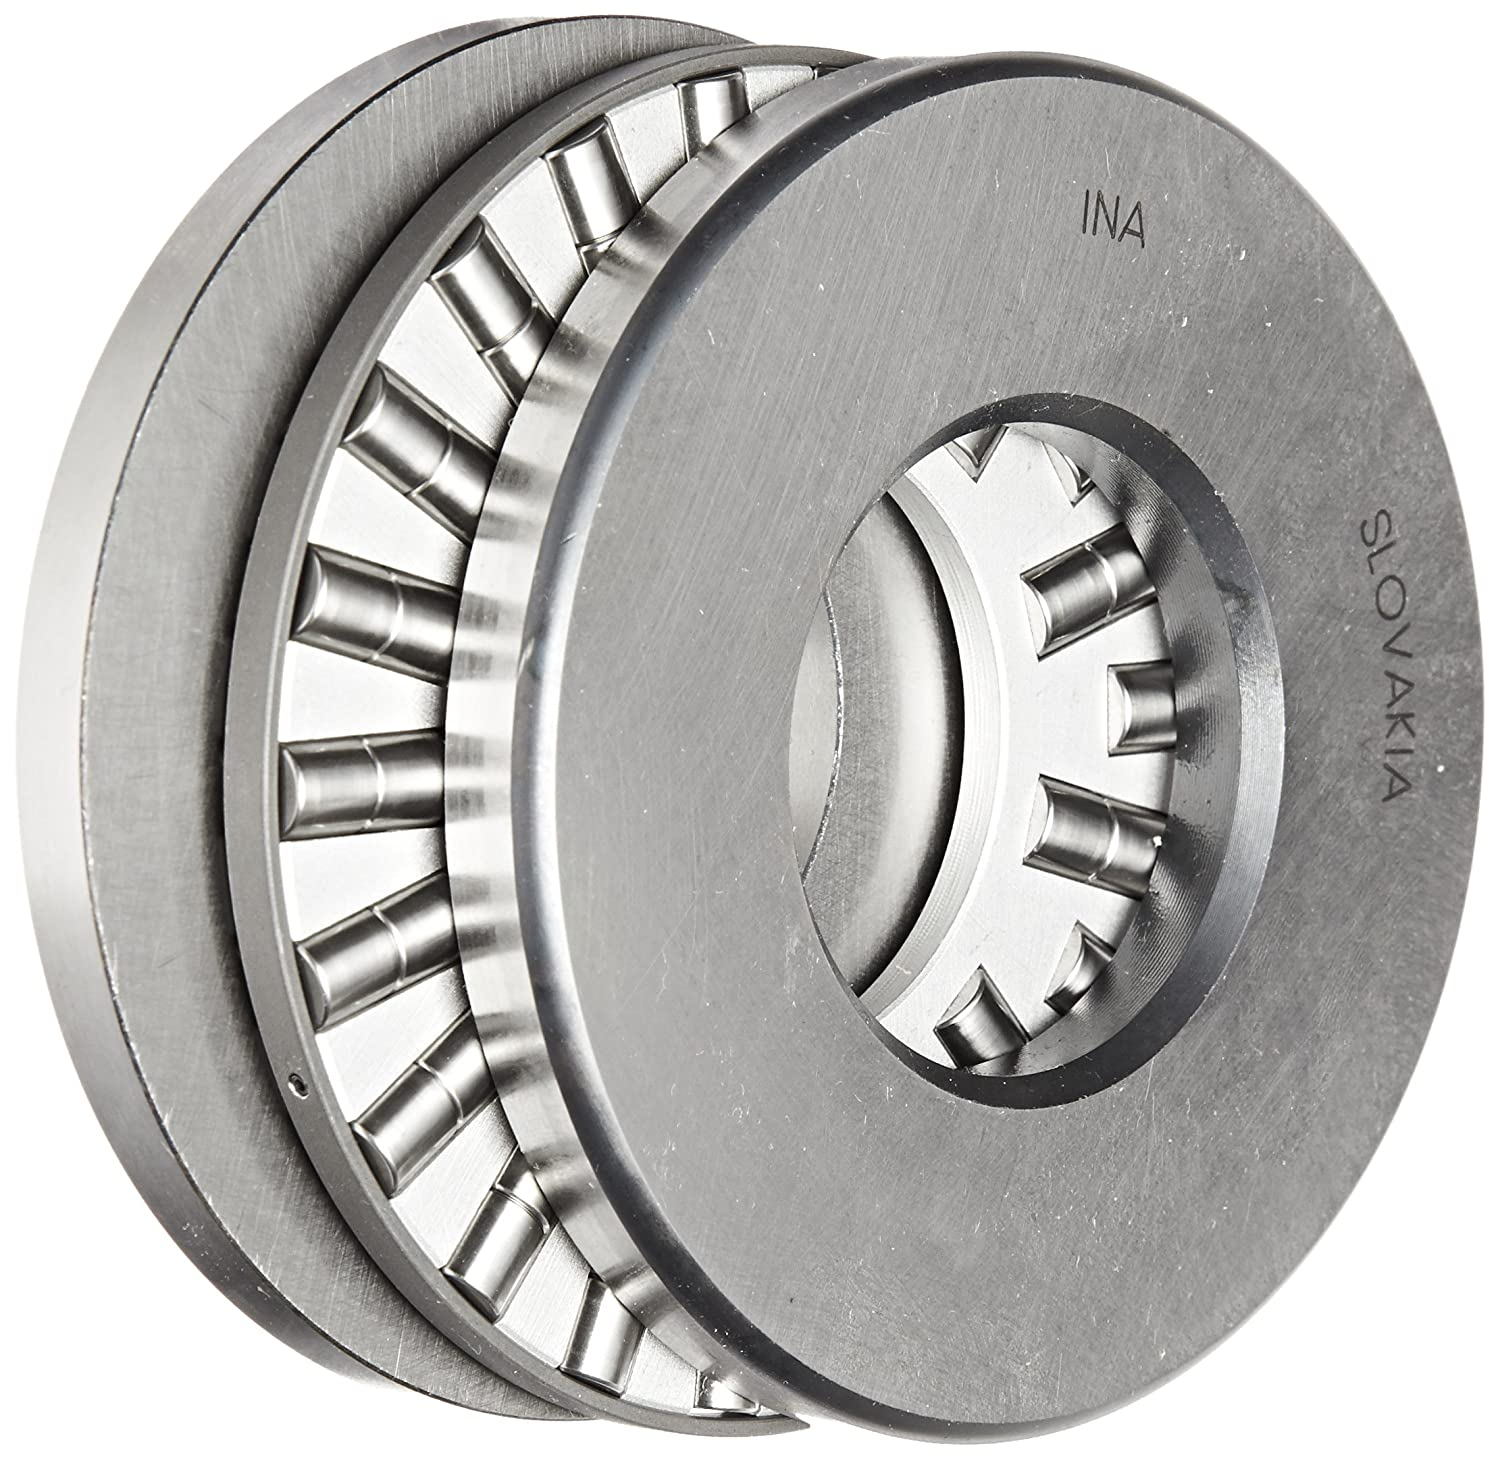 INA 87408 Cylindrical Roller Thrust Bearing, Thick Flat Race, Standard Cage, Open End, Metric, 40mm ID, 90mm OD, 23mm Width, 4400rpm Maximum Rotational ...